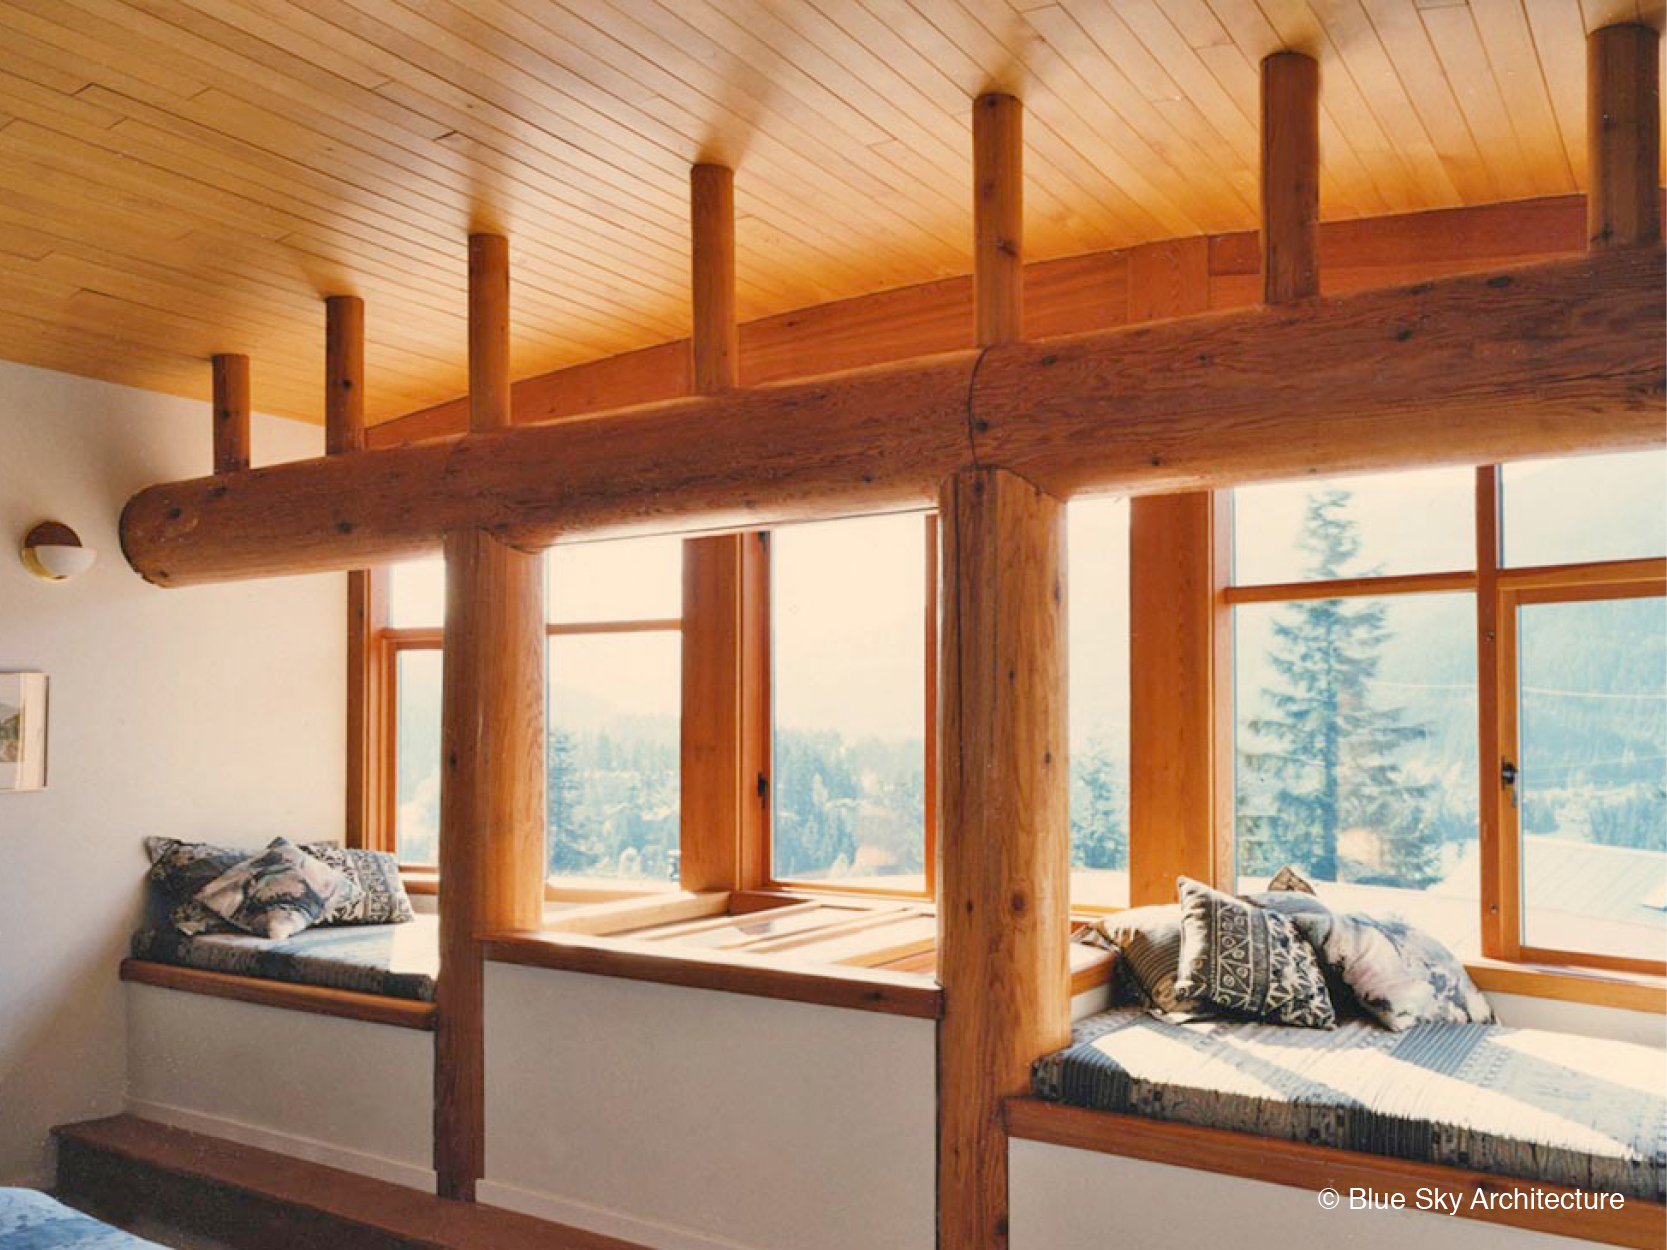 Sitting Room with Natural Log Rafters and Columns